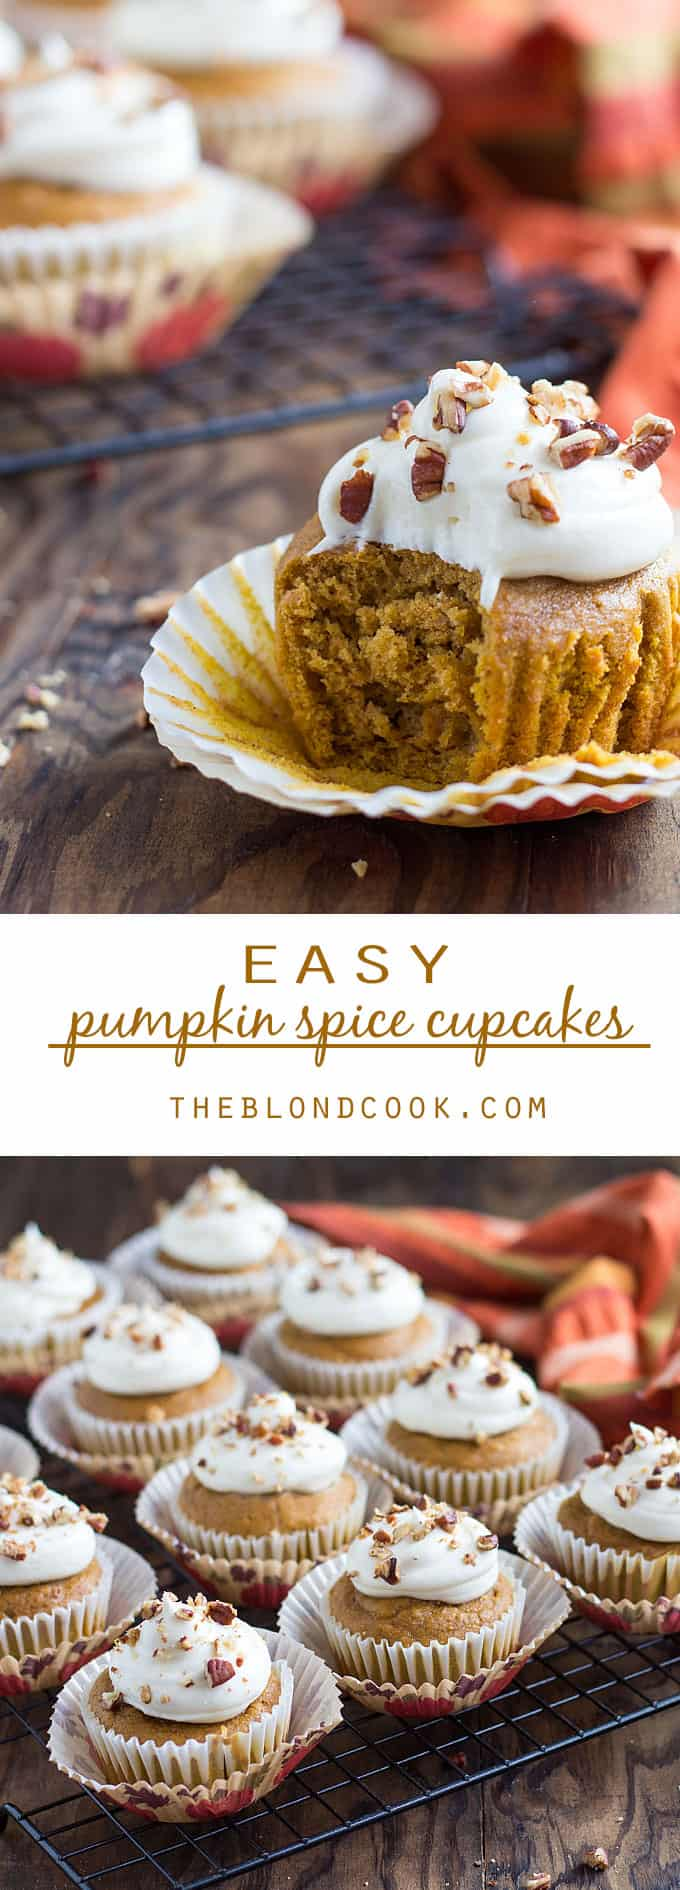 EASY Pumpkin Spice Cupcakes - Adding canned pumpkin puree to a boxed spice cake mix yields the easiest, flavorful fall cupcakes!